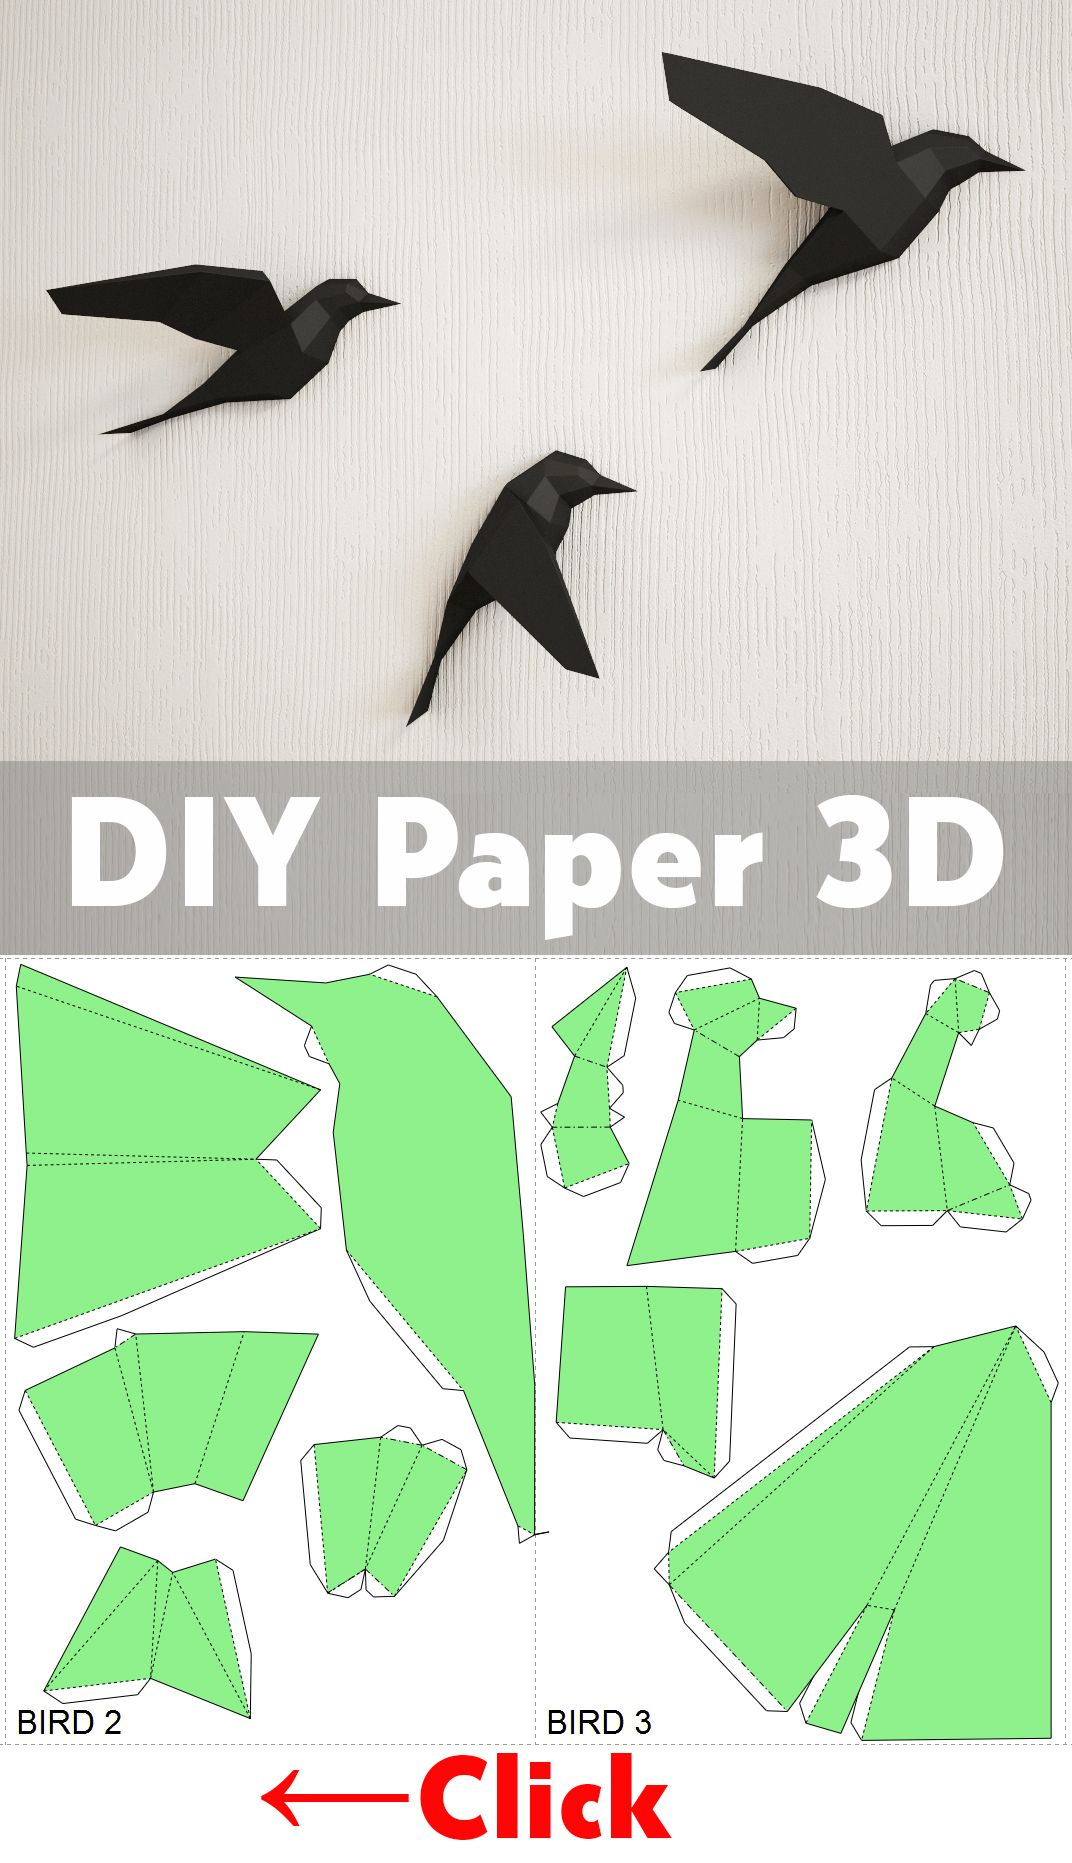 Diy Crafts Paper Projects Papercraft Ideas How To Make Birds House Decor Crafting Do It Yourself Bird